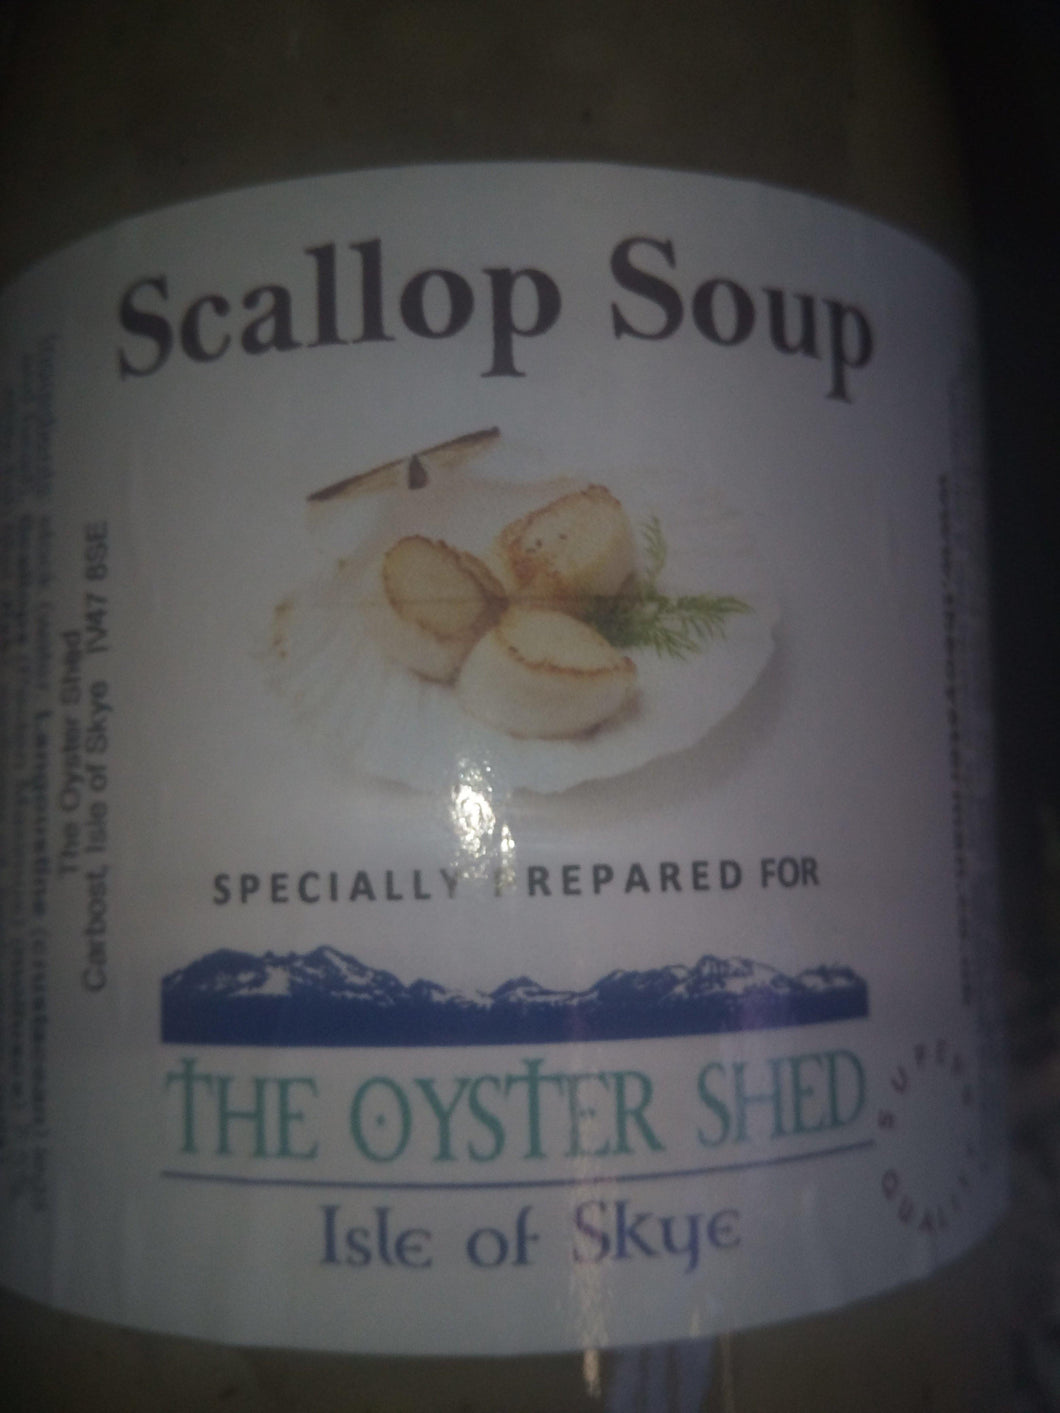 Scallop Soup - The Oyster Shed